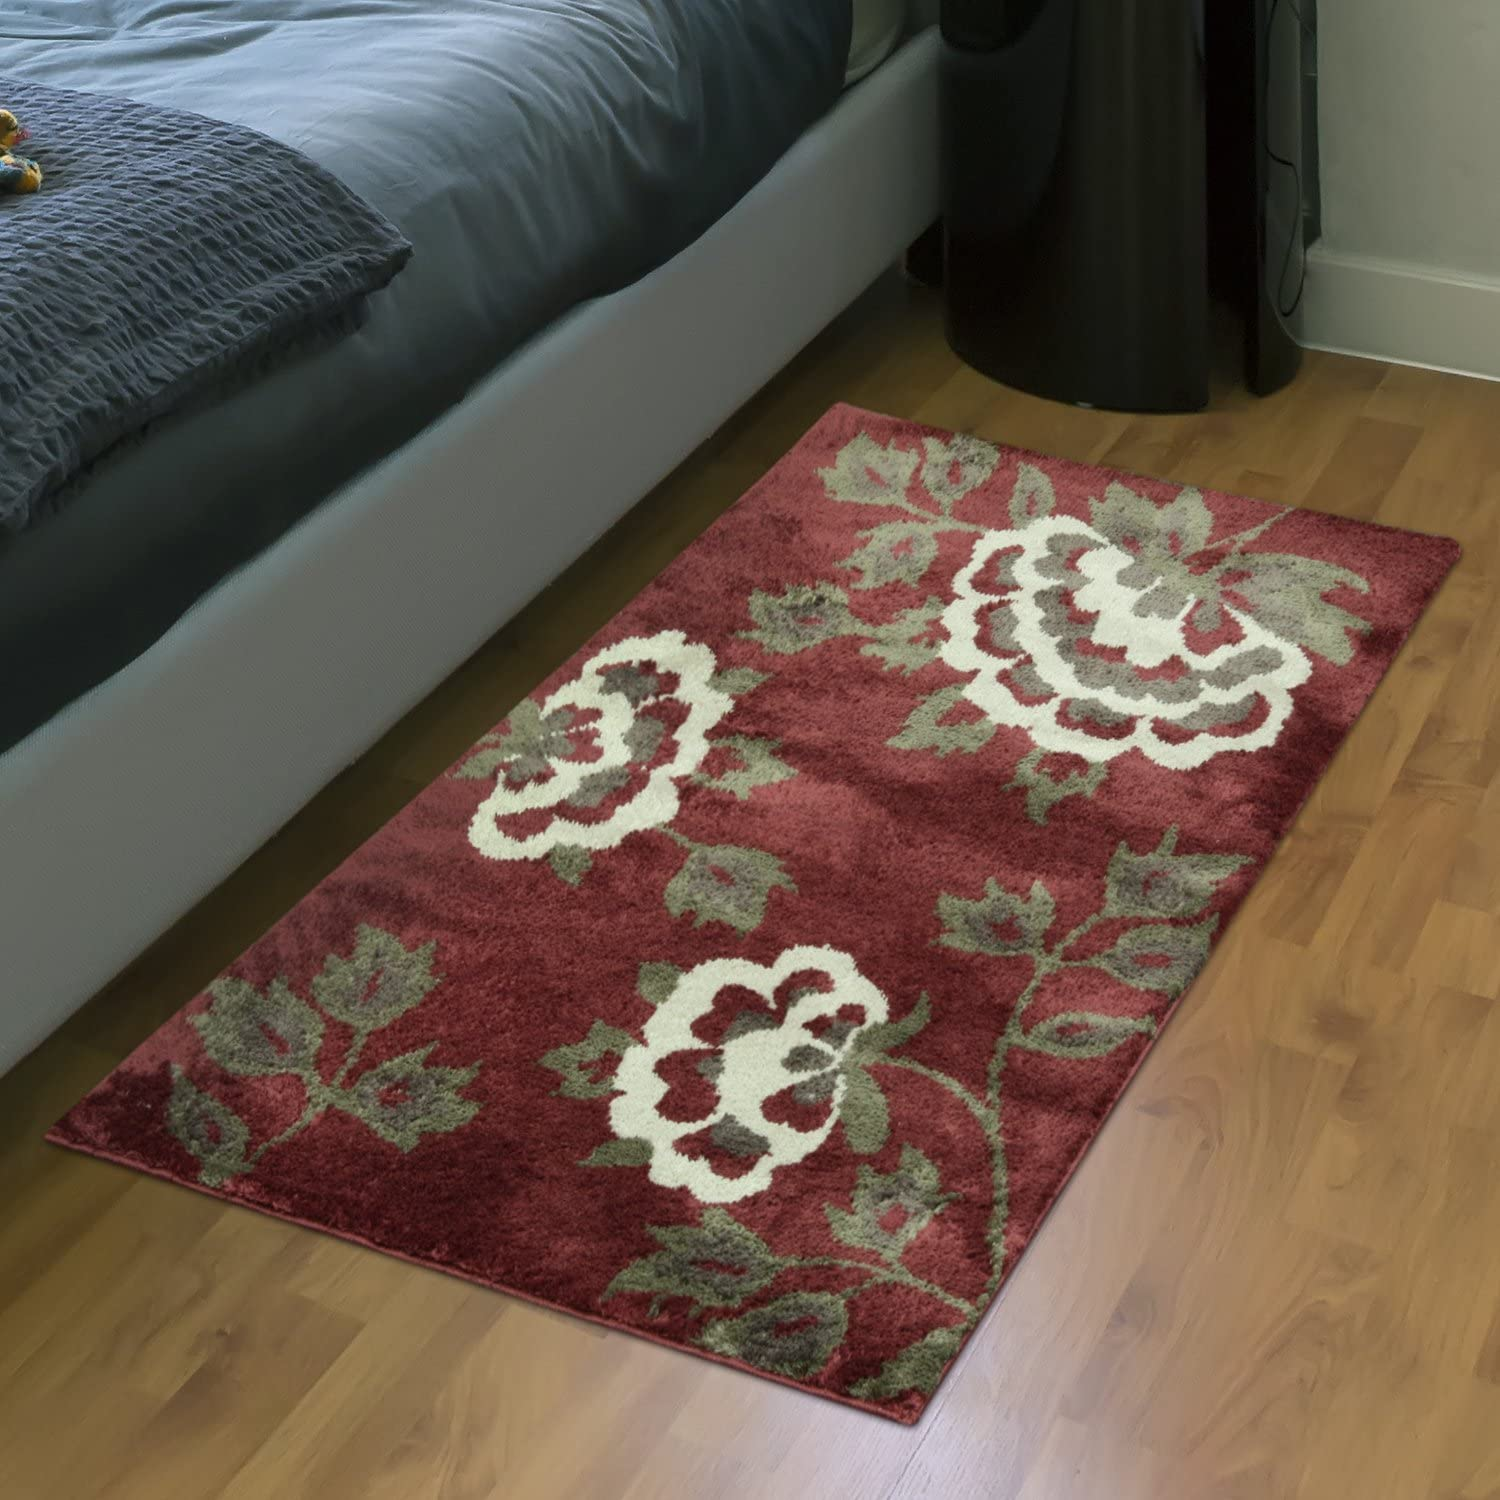 32 x 20 Cashlon Skid Resistant Newberry Gold Accent Rug